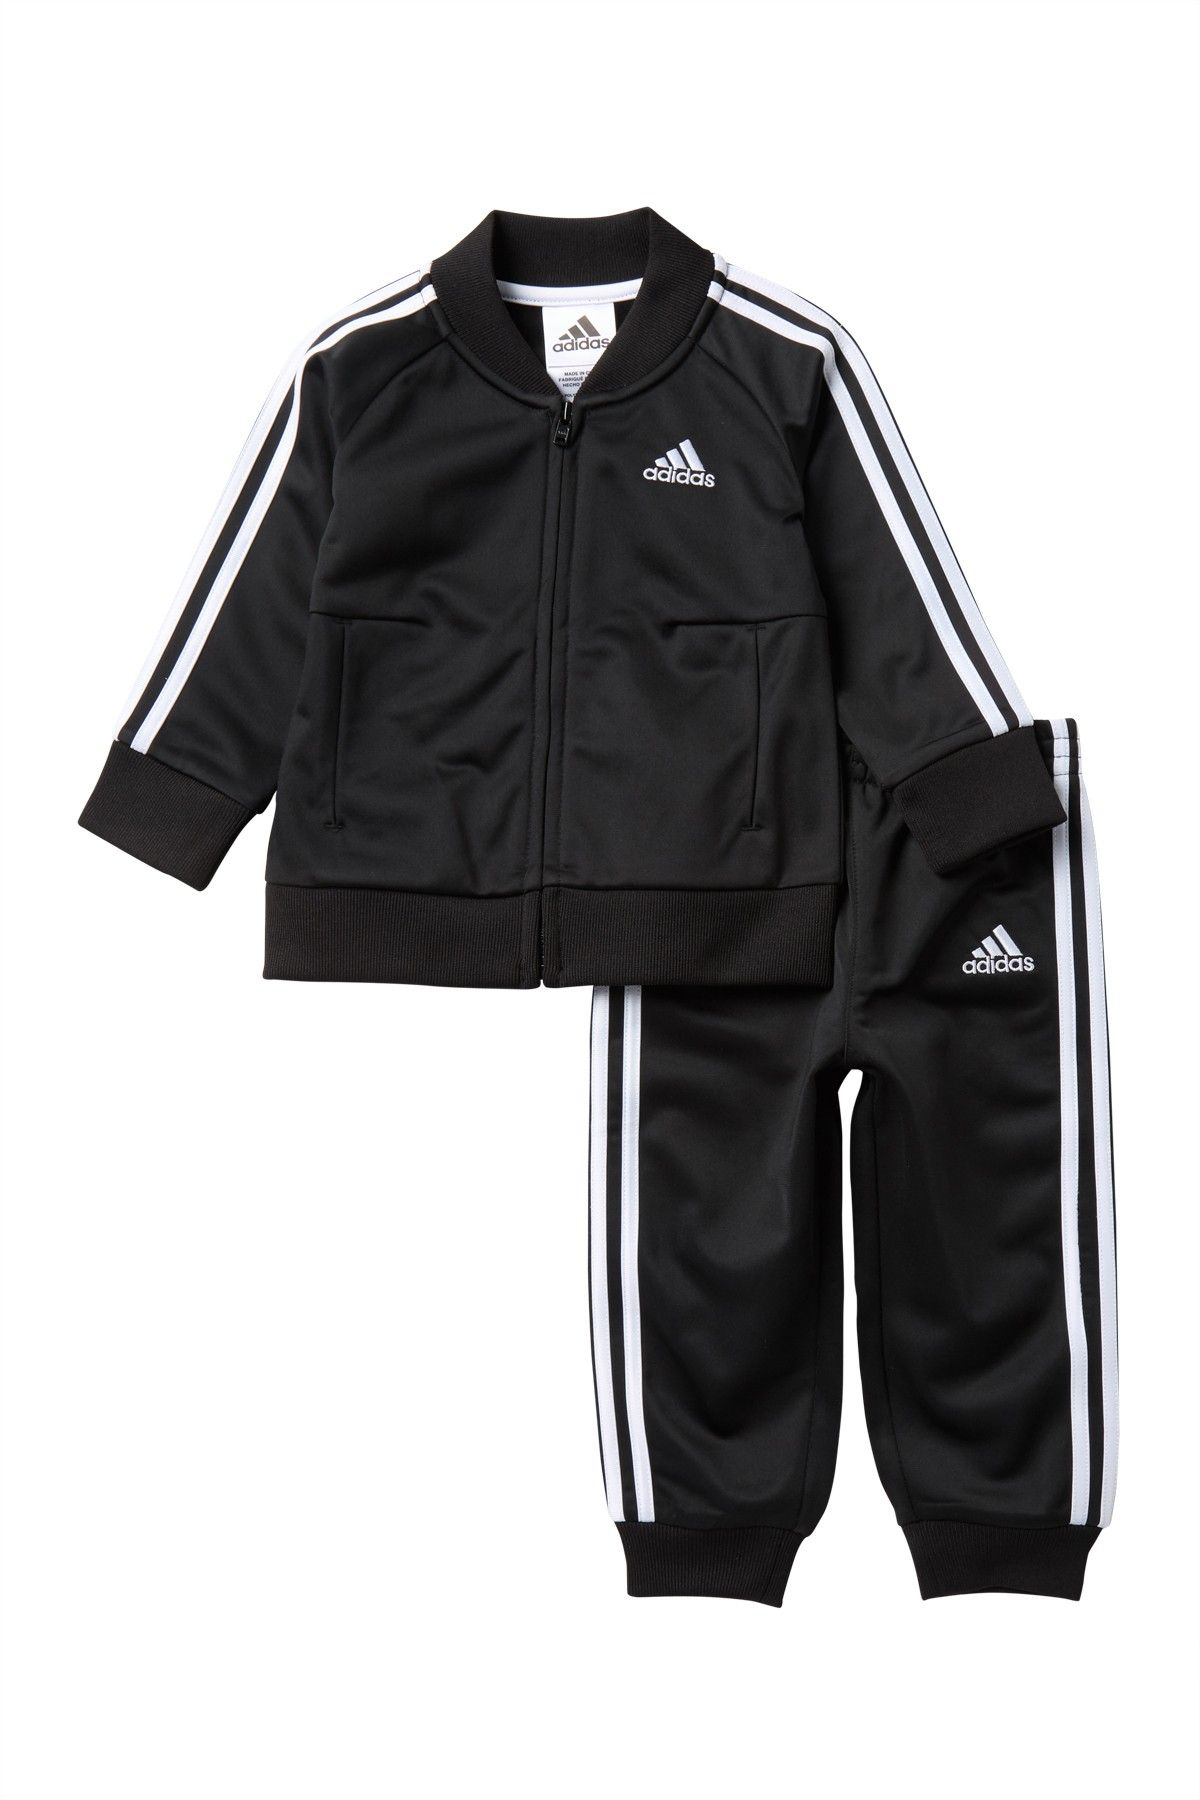 Tigre Natura simplemente  adidas | Tracksuit Tricot 2-Piece Set | Nordstrom Rack | Adidas tracksuit,  Baby adidas tracksuit, Tracksuit